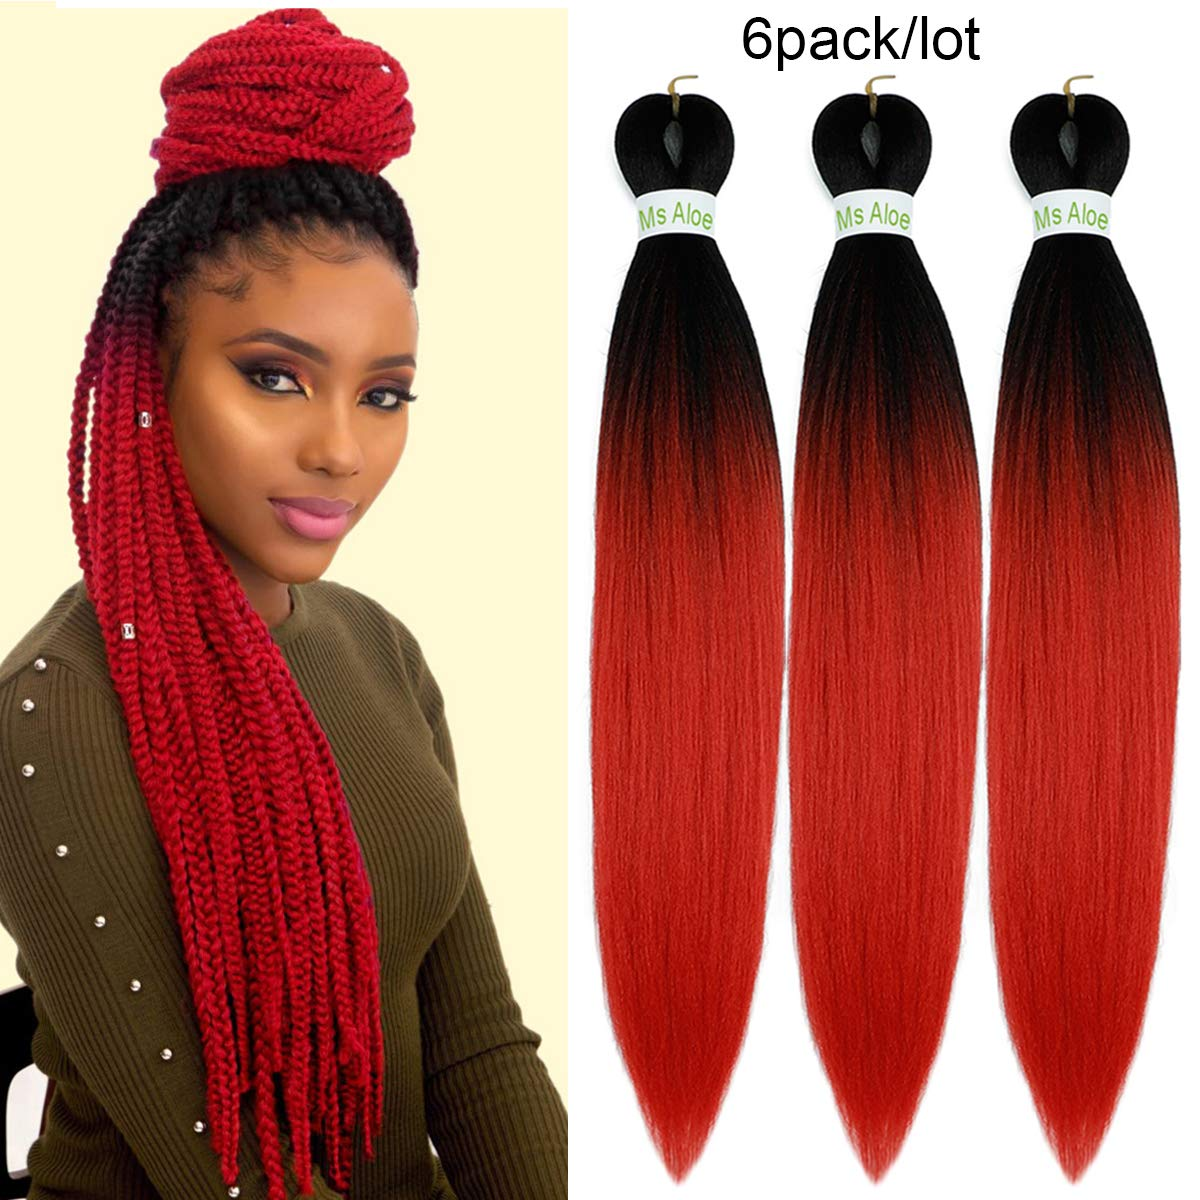 6pack Easy Braid Pre Stretched Braiding Hair Ombre Red Color 24inch Yaki Texture Ez Braids Hot Water Setting Synthetic Fiber Crochet Twist Soft Braiding Hair Extensions 1b Red Beauty